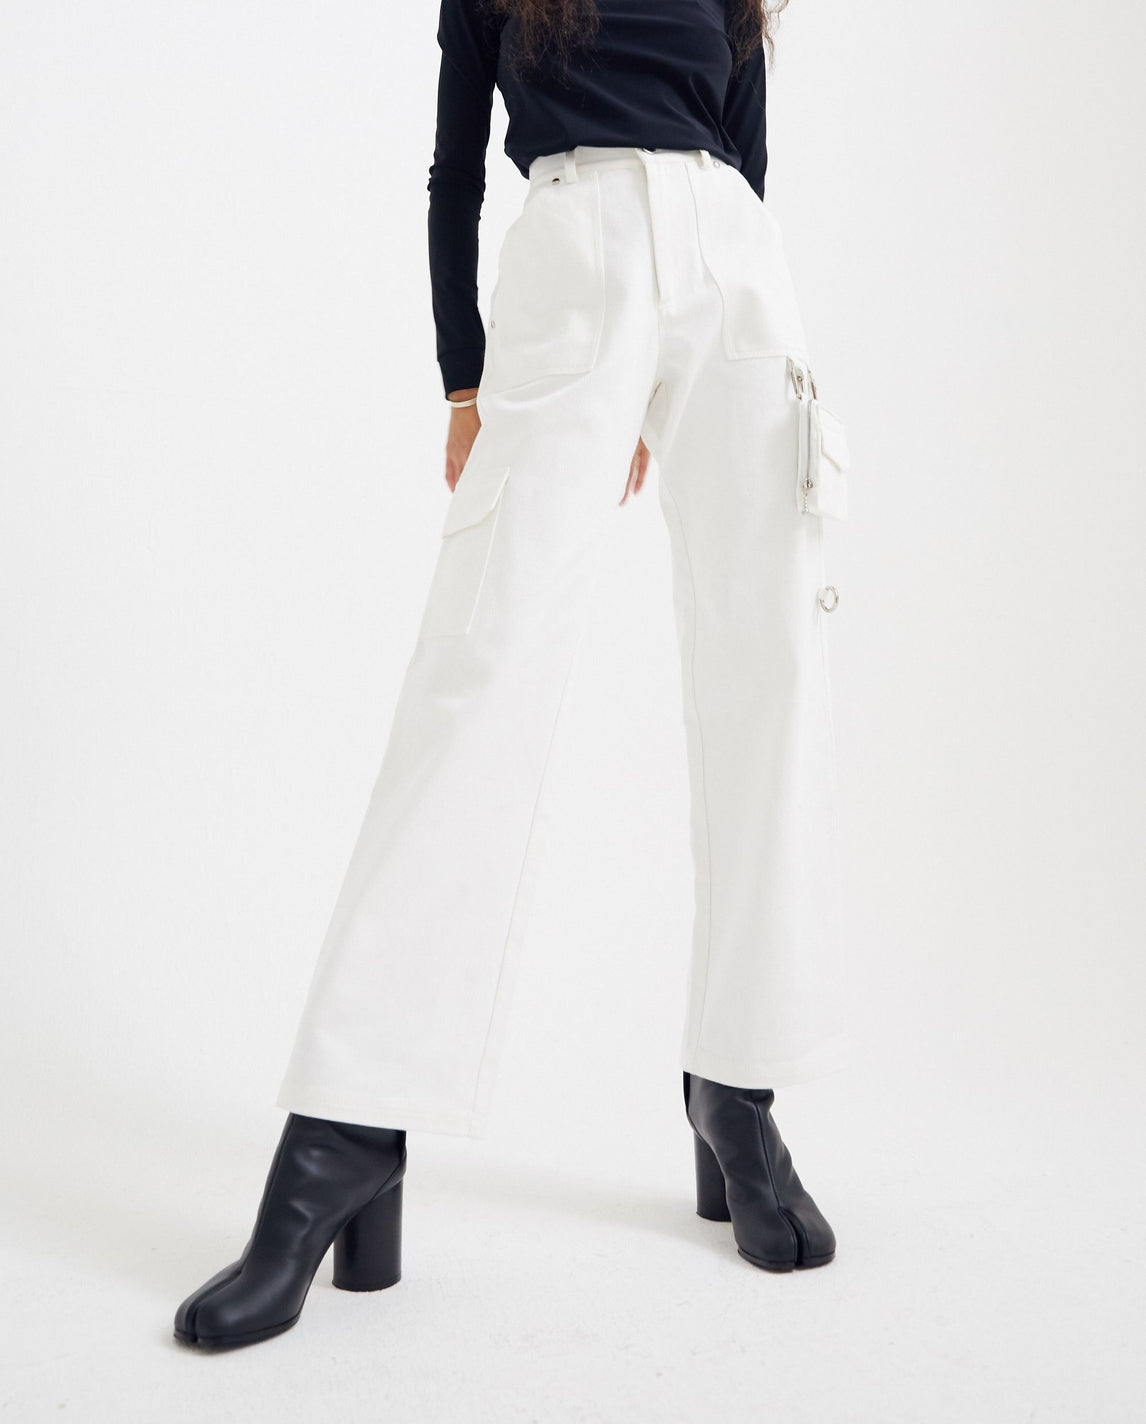 Clip-on Bag Pants - White UNISEX PRIVATE POLICY